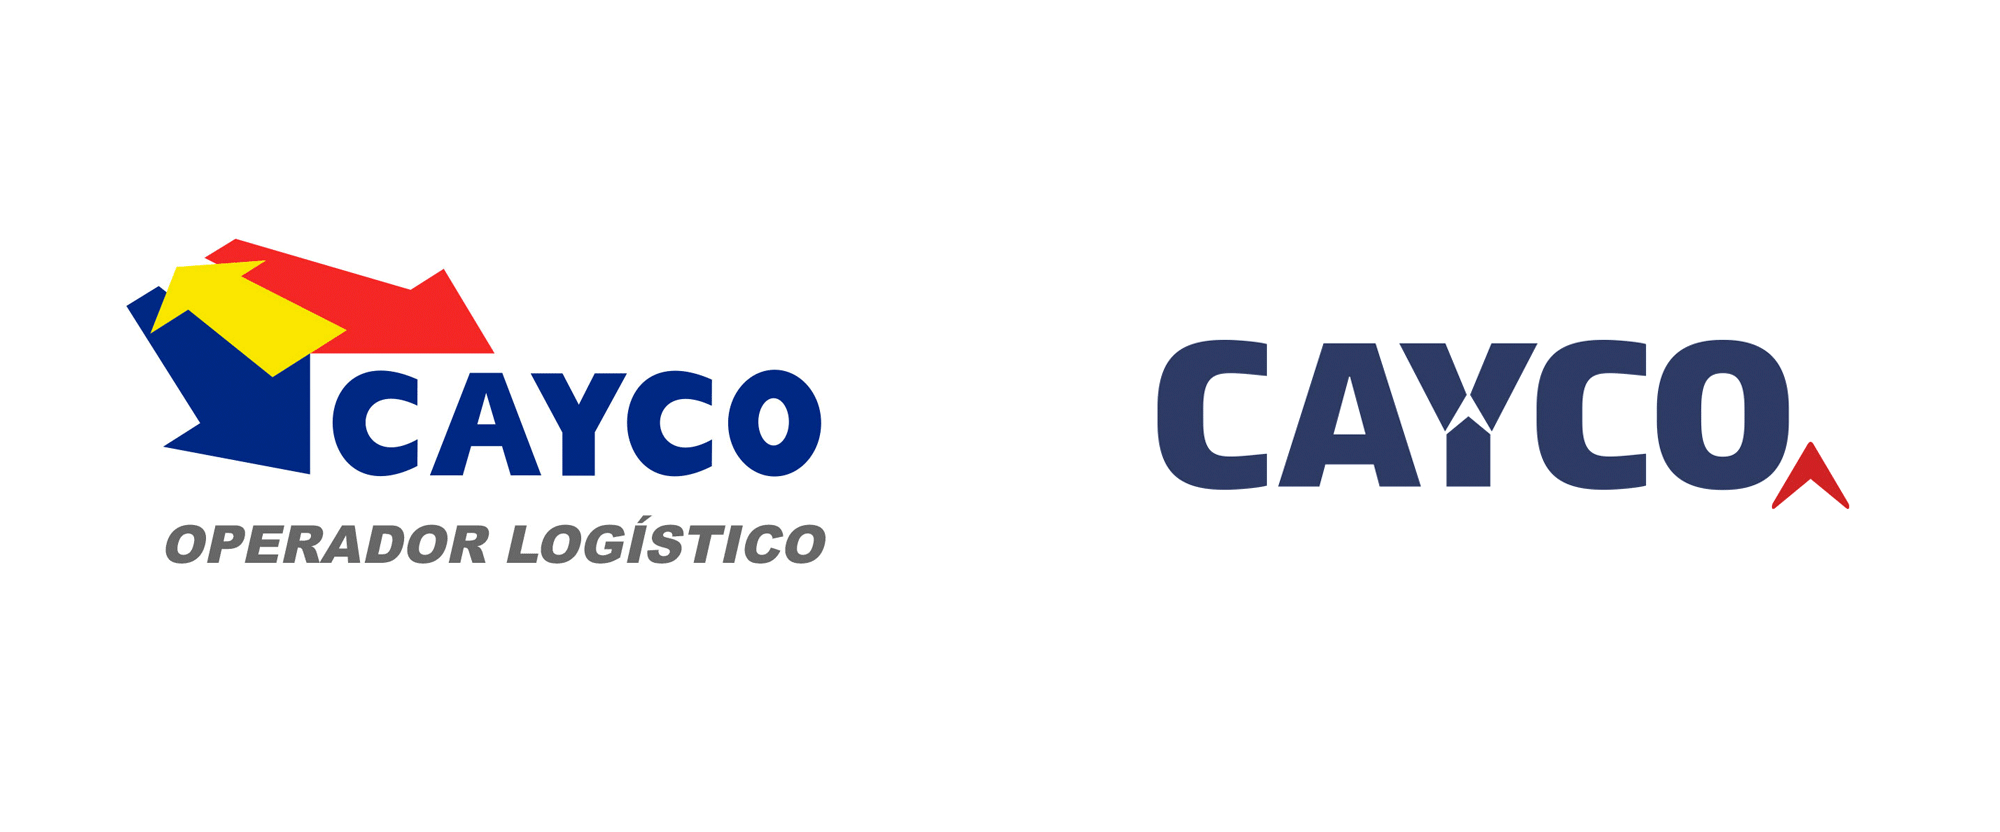 New Logo and Identity for CAYCO by Beusual